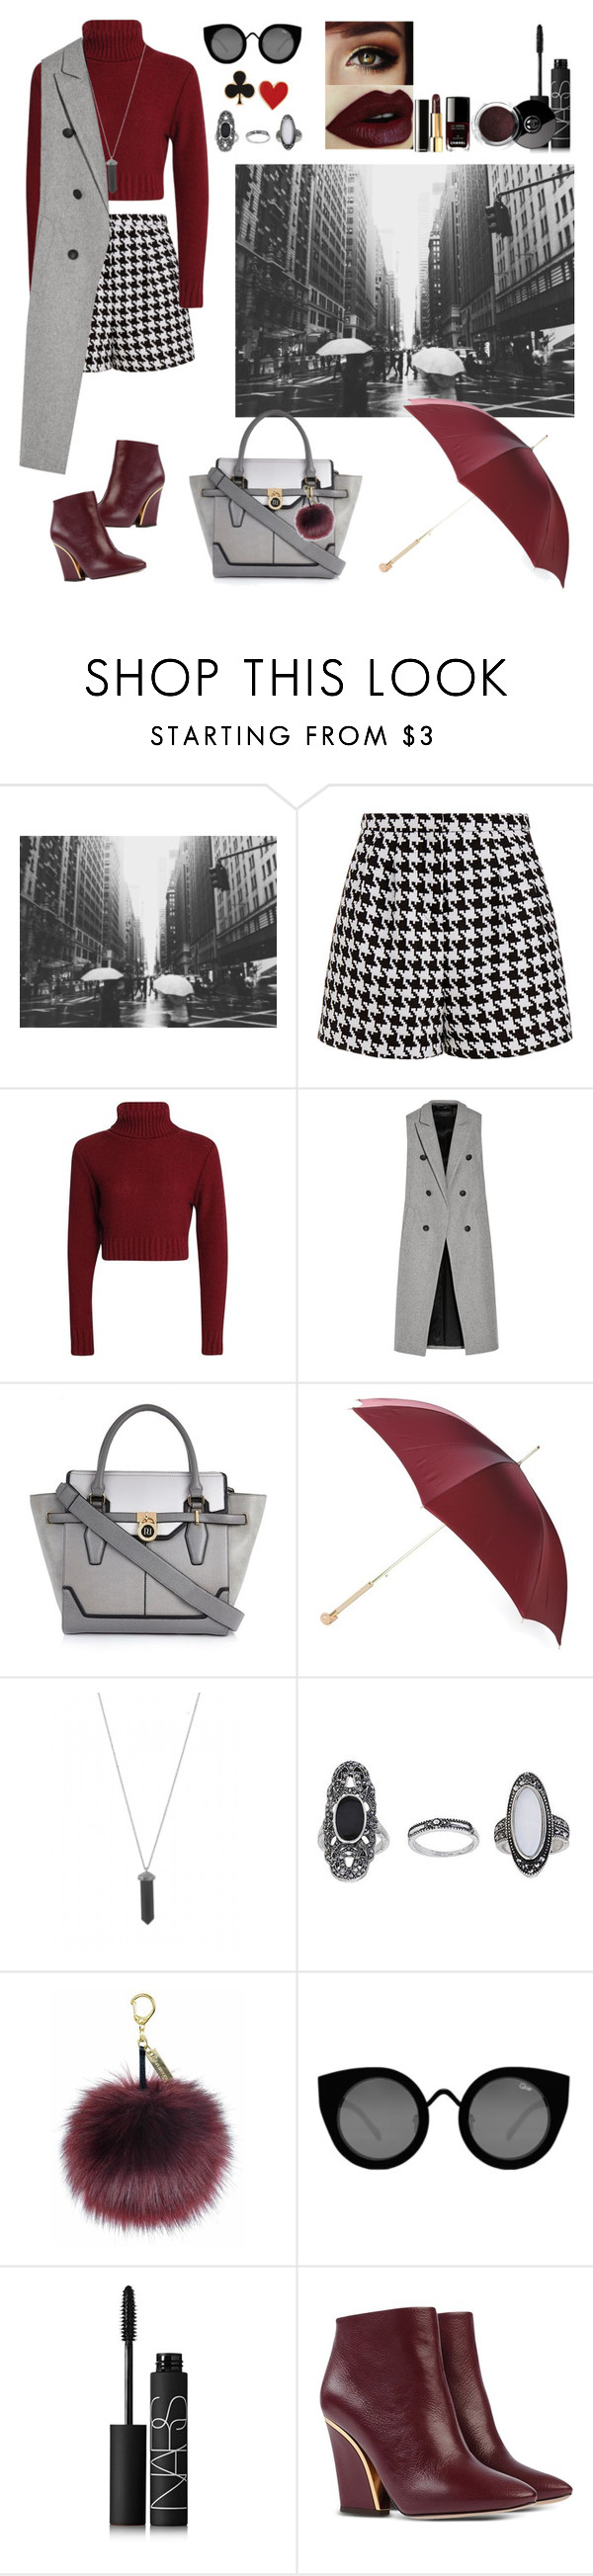 """""""citywalk"""" by yuisatrio ❤ liked on Polyvore featuring Emma Cook, rag & bone, River Island, Alexander McQueen, Karen Kane, Topshop, Quay, NARS Cosmetics, Chloé and Chanel"""